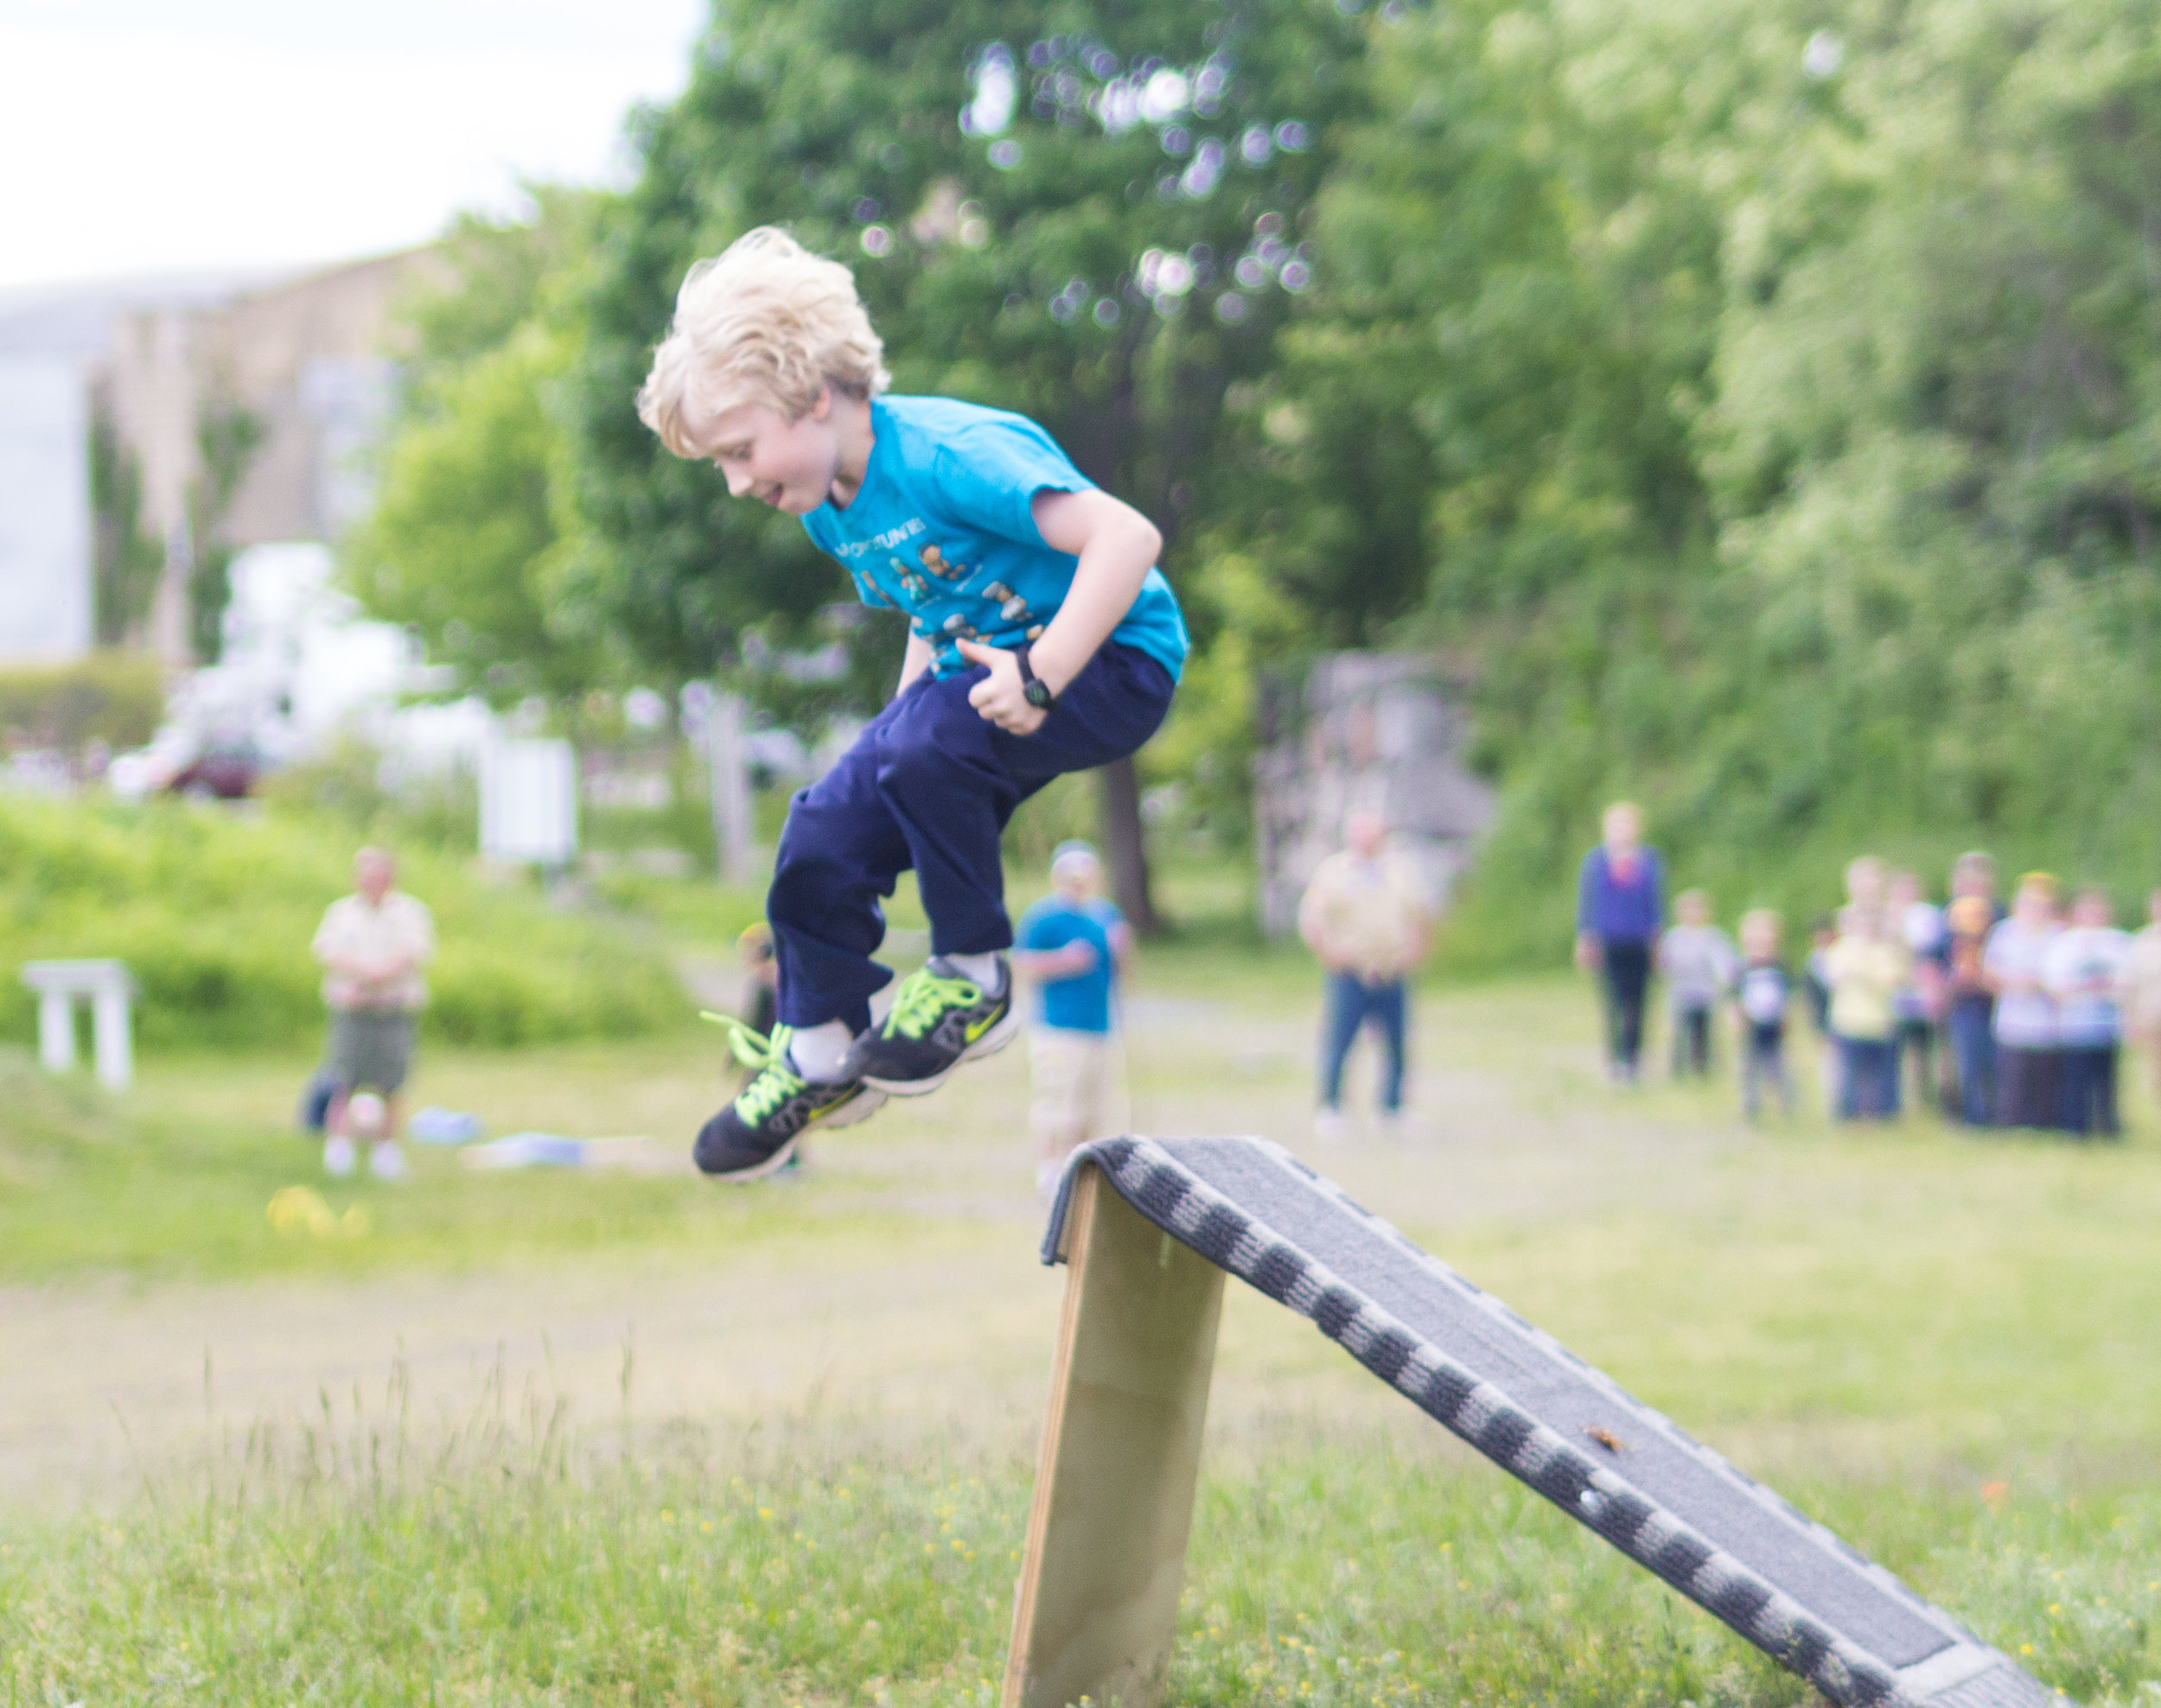 Cub Scouts Obstacle Course_04.jpg